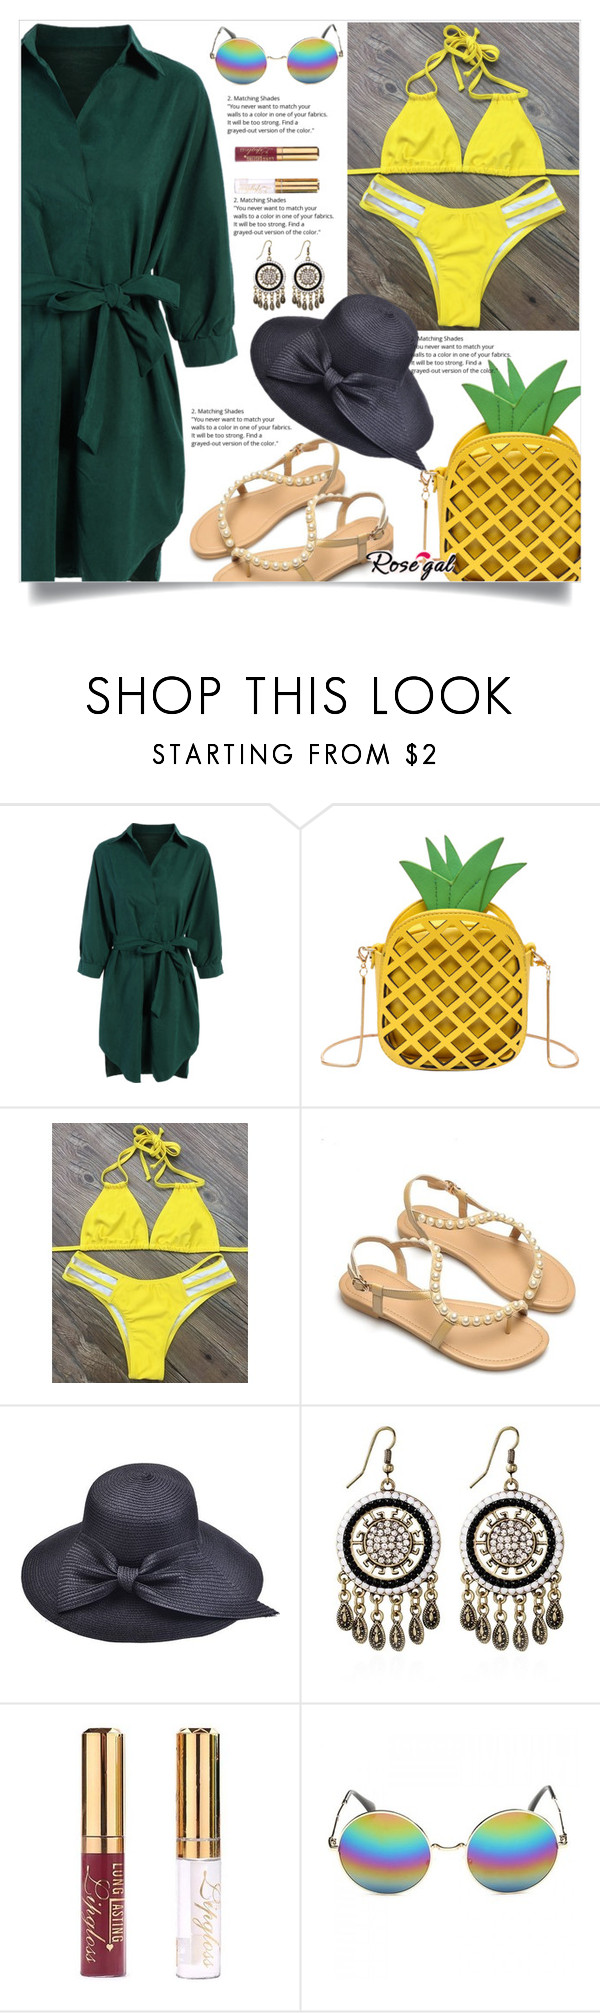 """""""Rosegal    14"""" by nejra-l ❤ liked on Polyvore featuring Summer, dress, promotion and rosegal"""